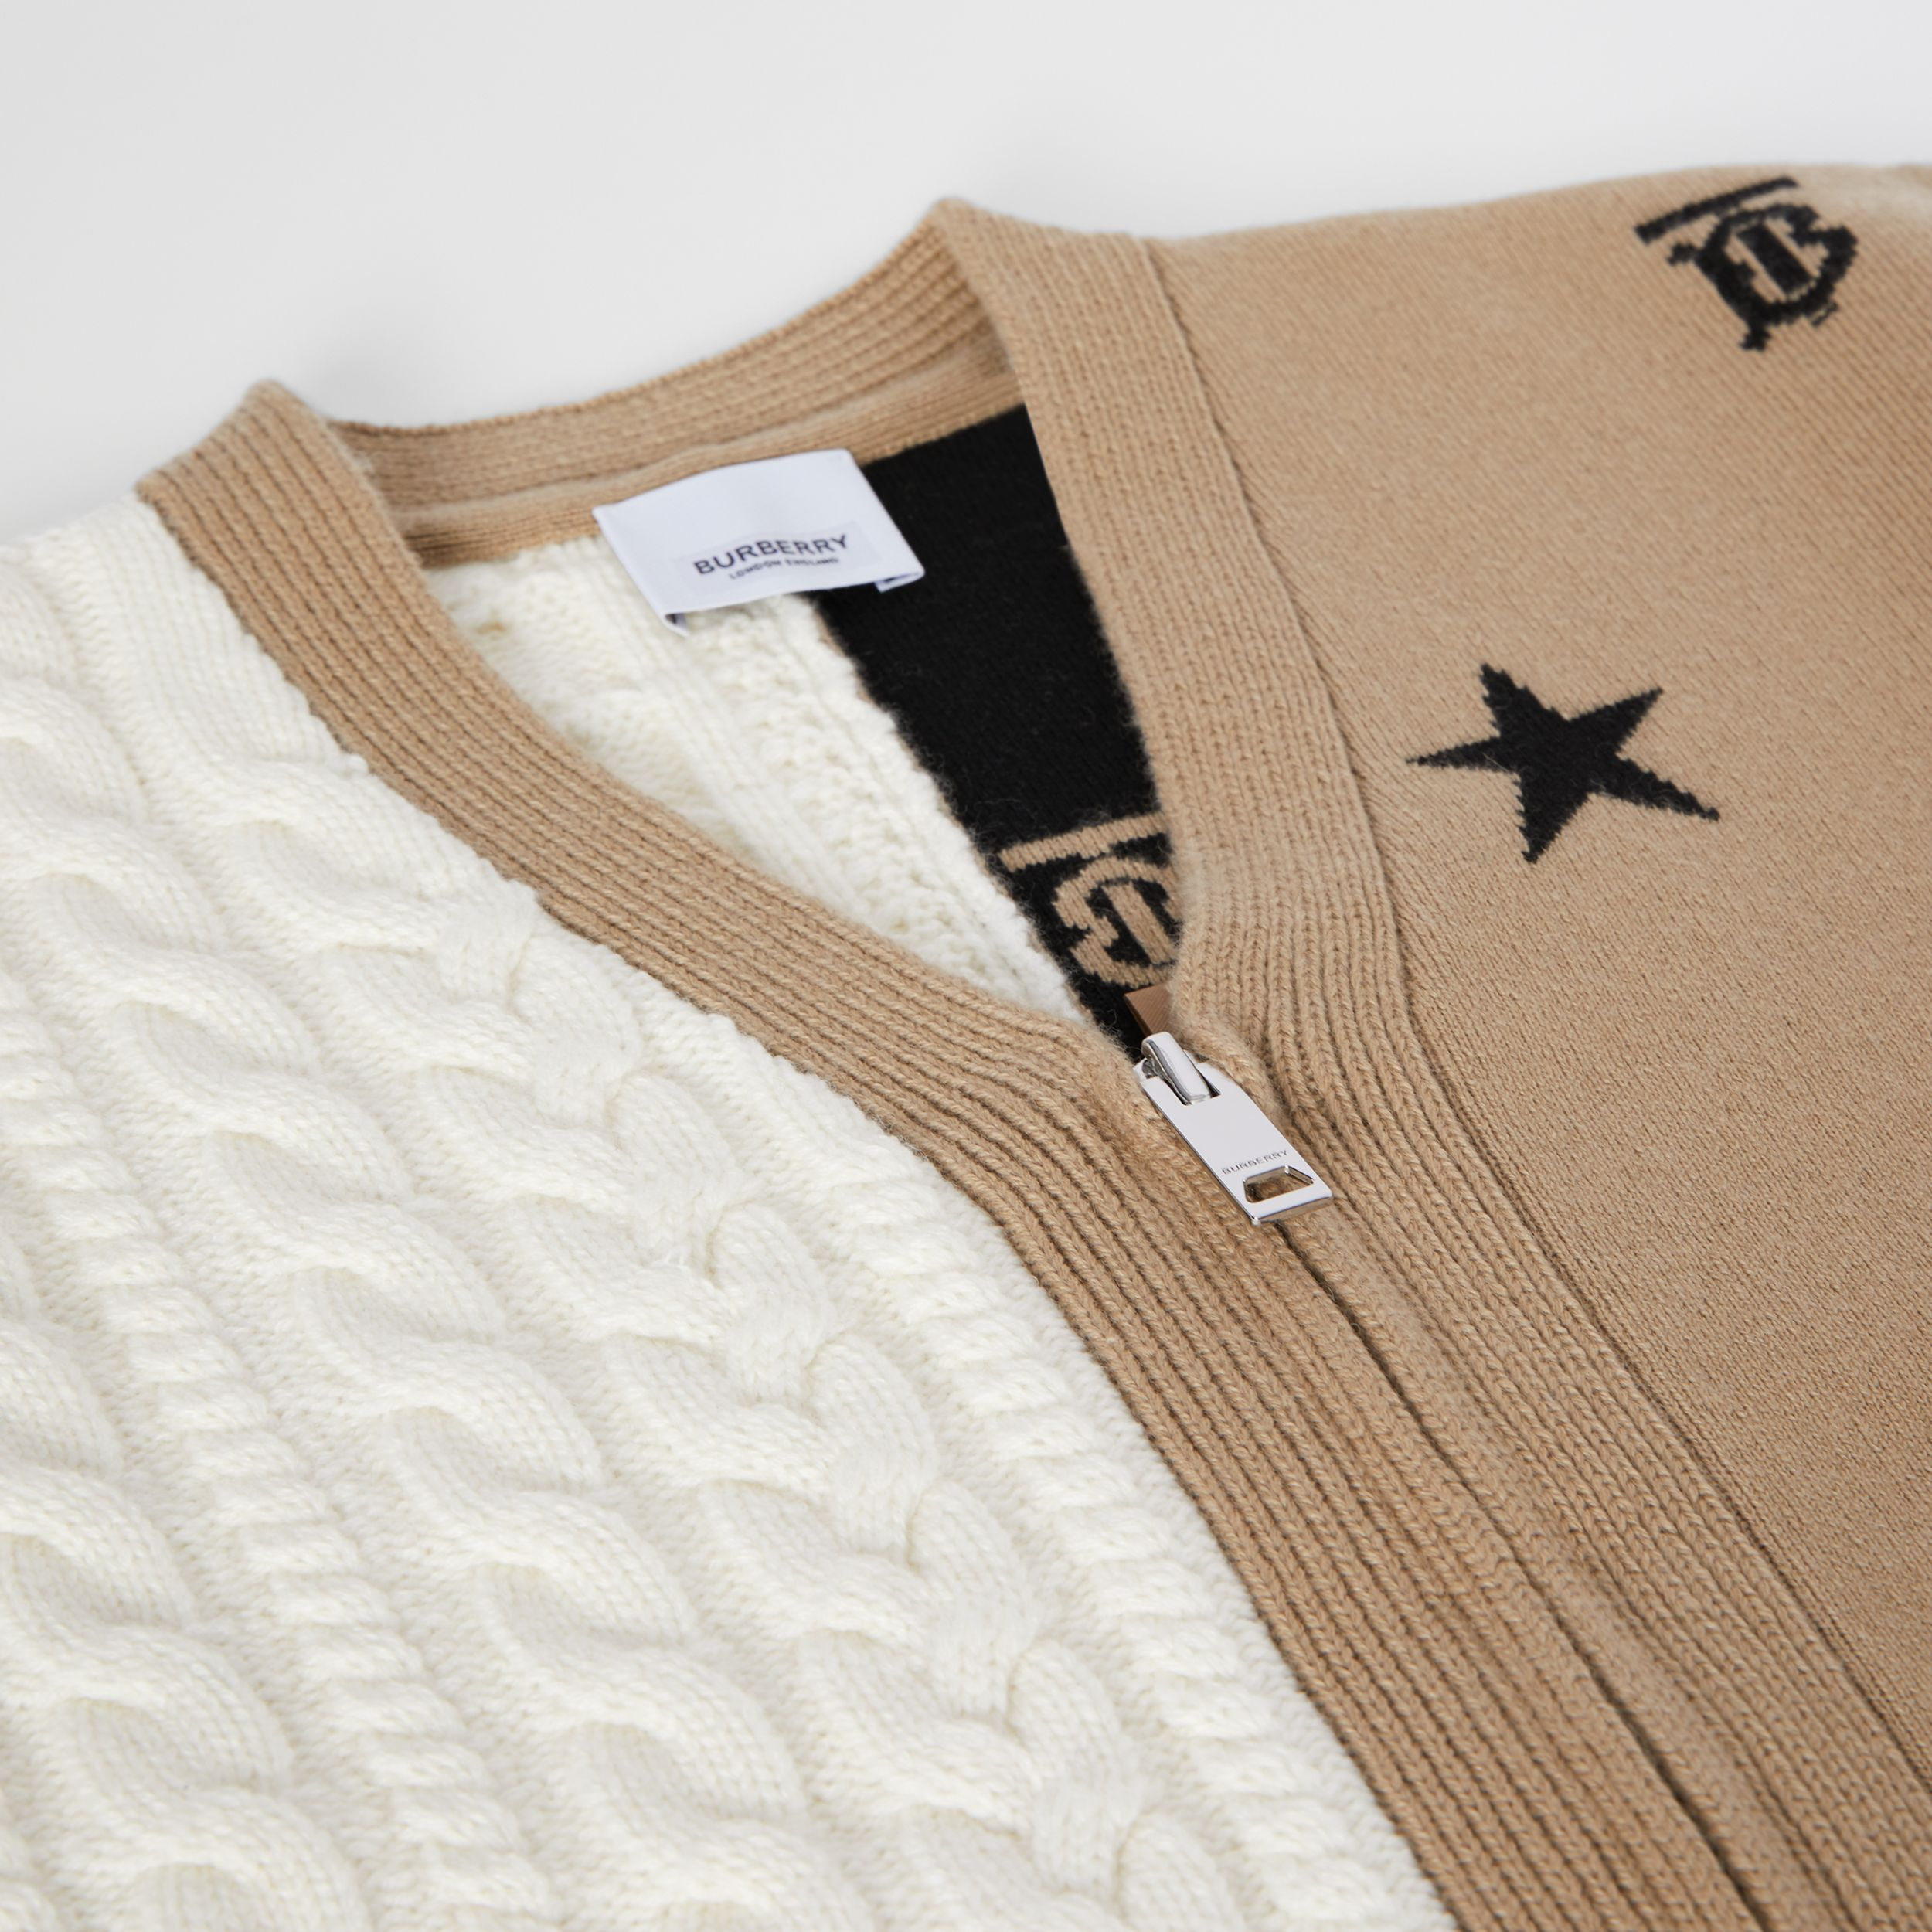 Star and Monogram Motif Wool Cashmere Cardigan in Archive Beige | Burberry United Kingdom - 2